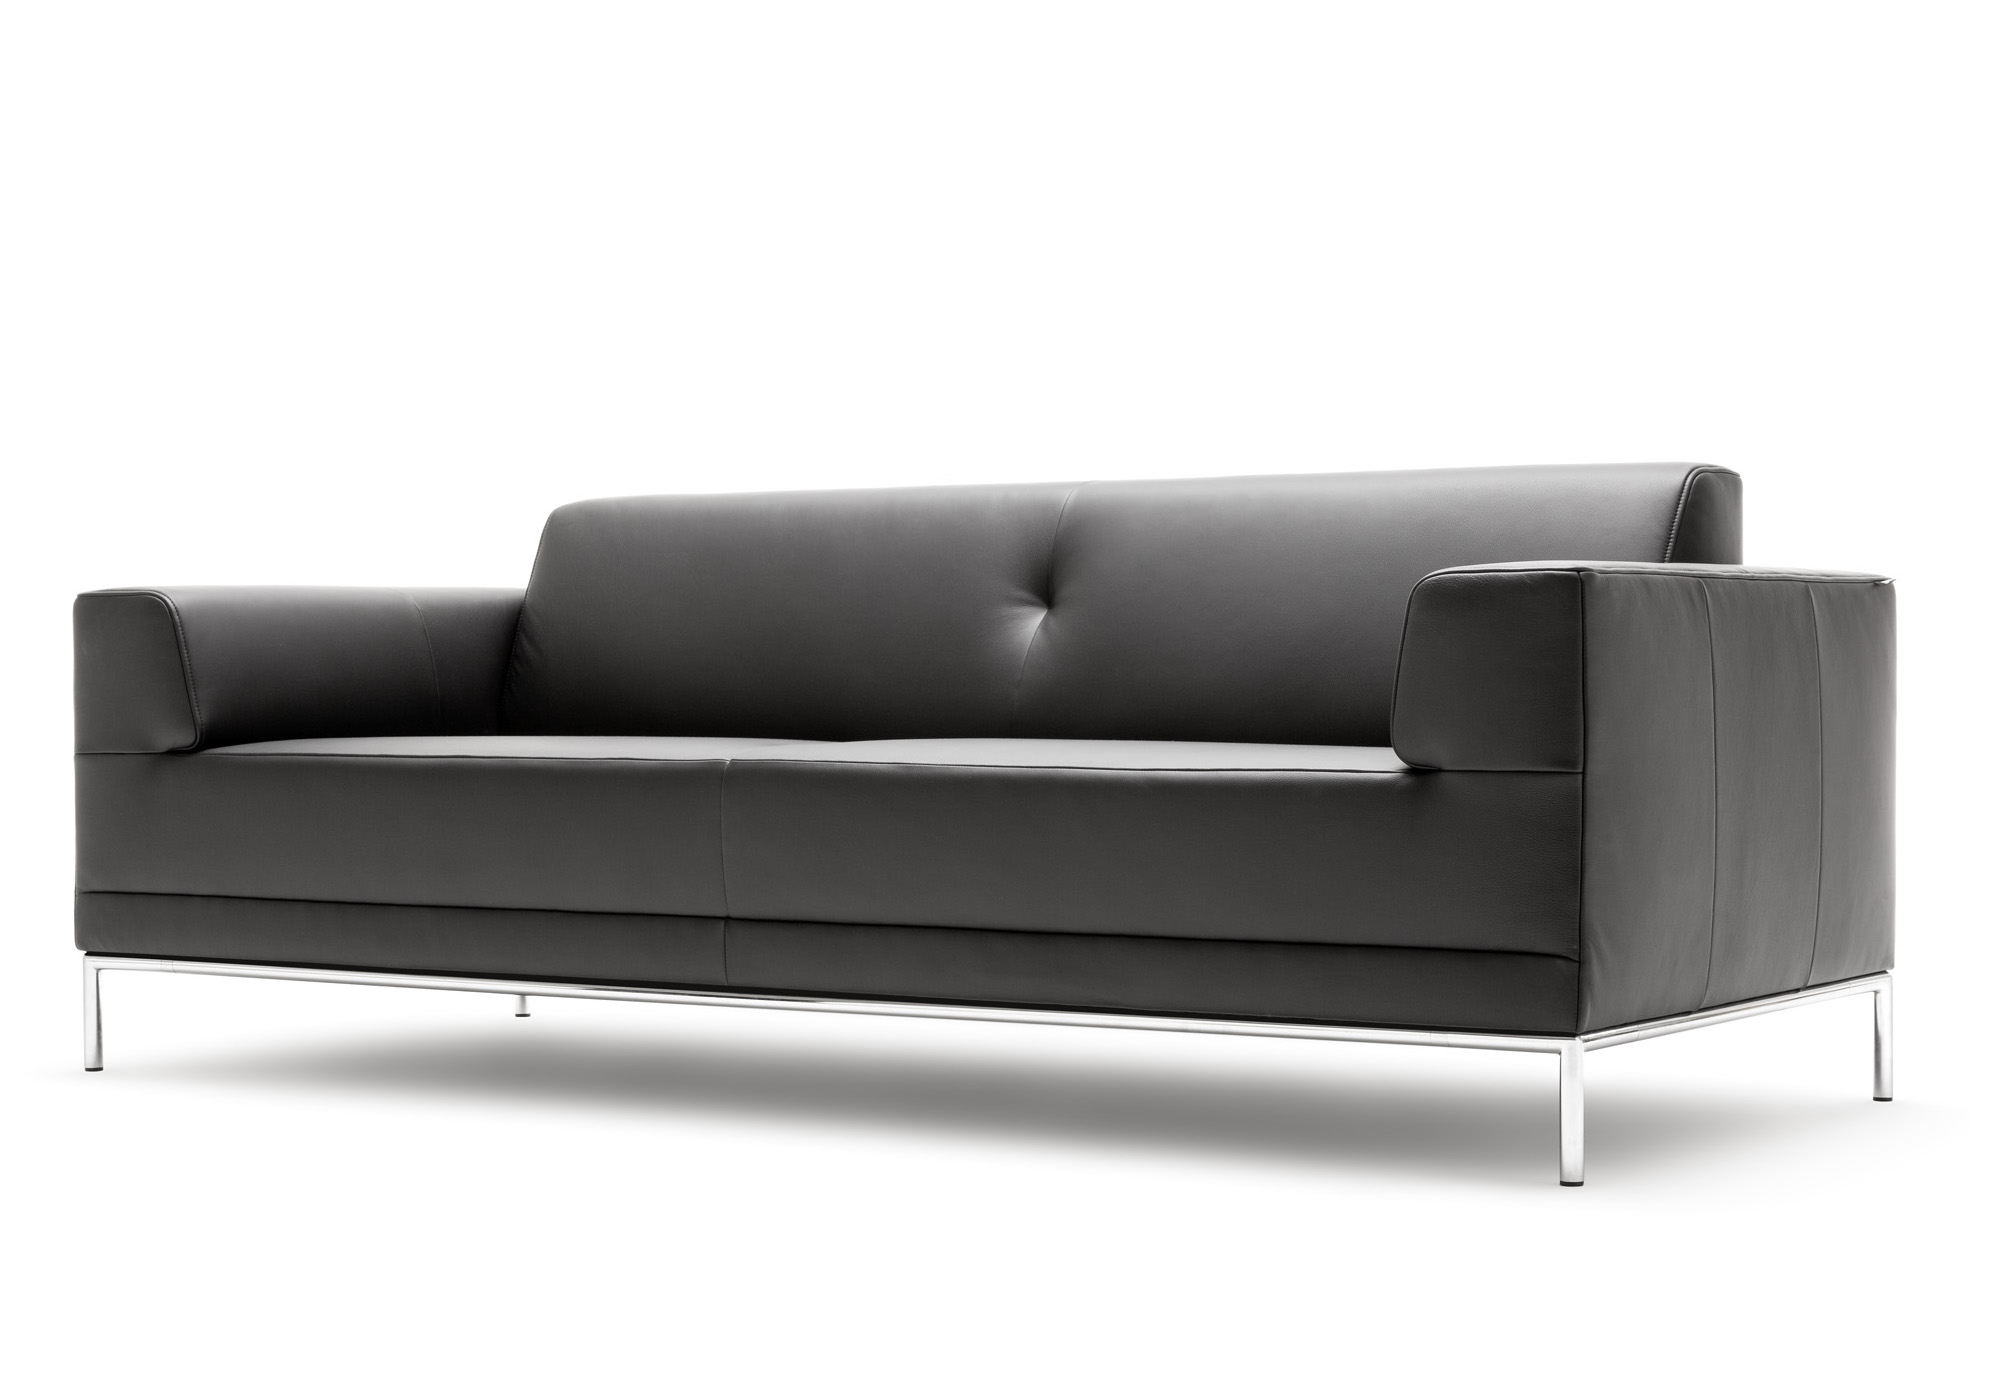 freistil 189 von rolf benz bei sofas in motion. Black Bedroom Furniture Sets. Home Design Ideas